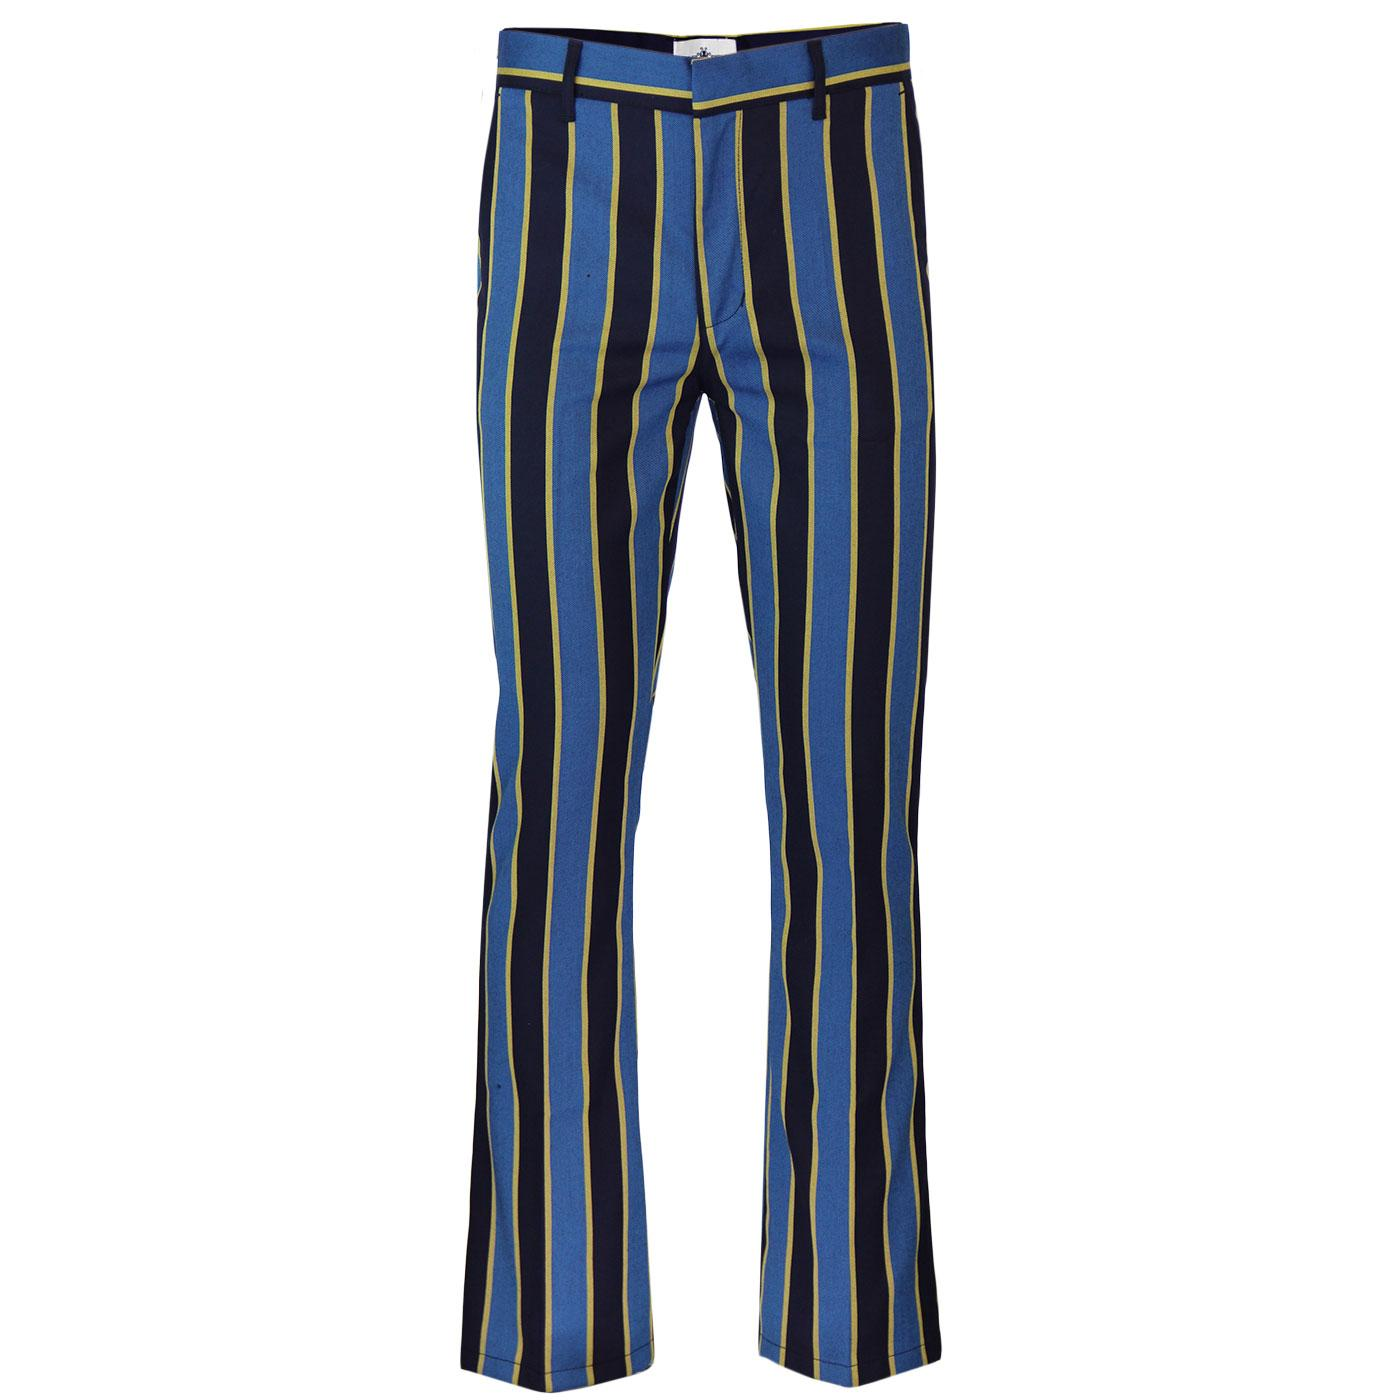 Madcap England Backbeat 1960s Mod Bootcut Flared Trousers in Blue and Yellow.